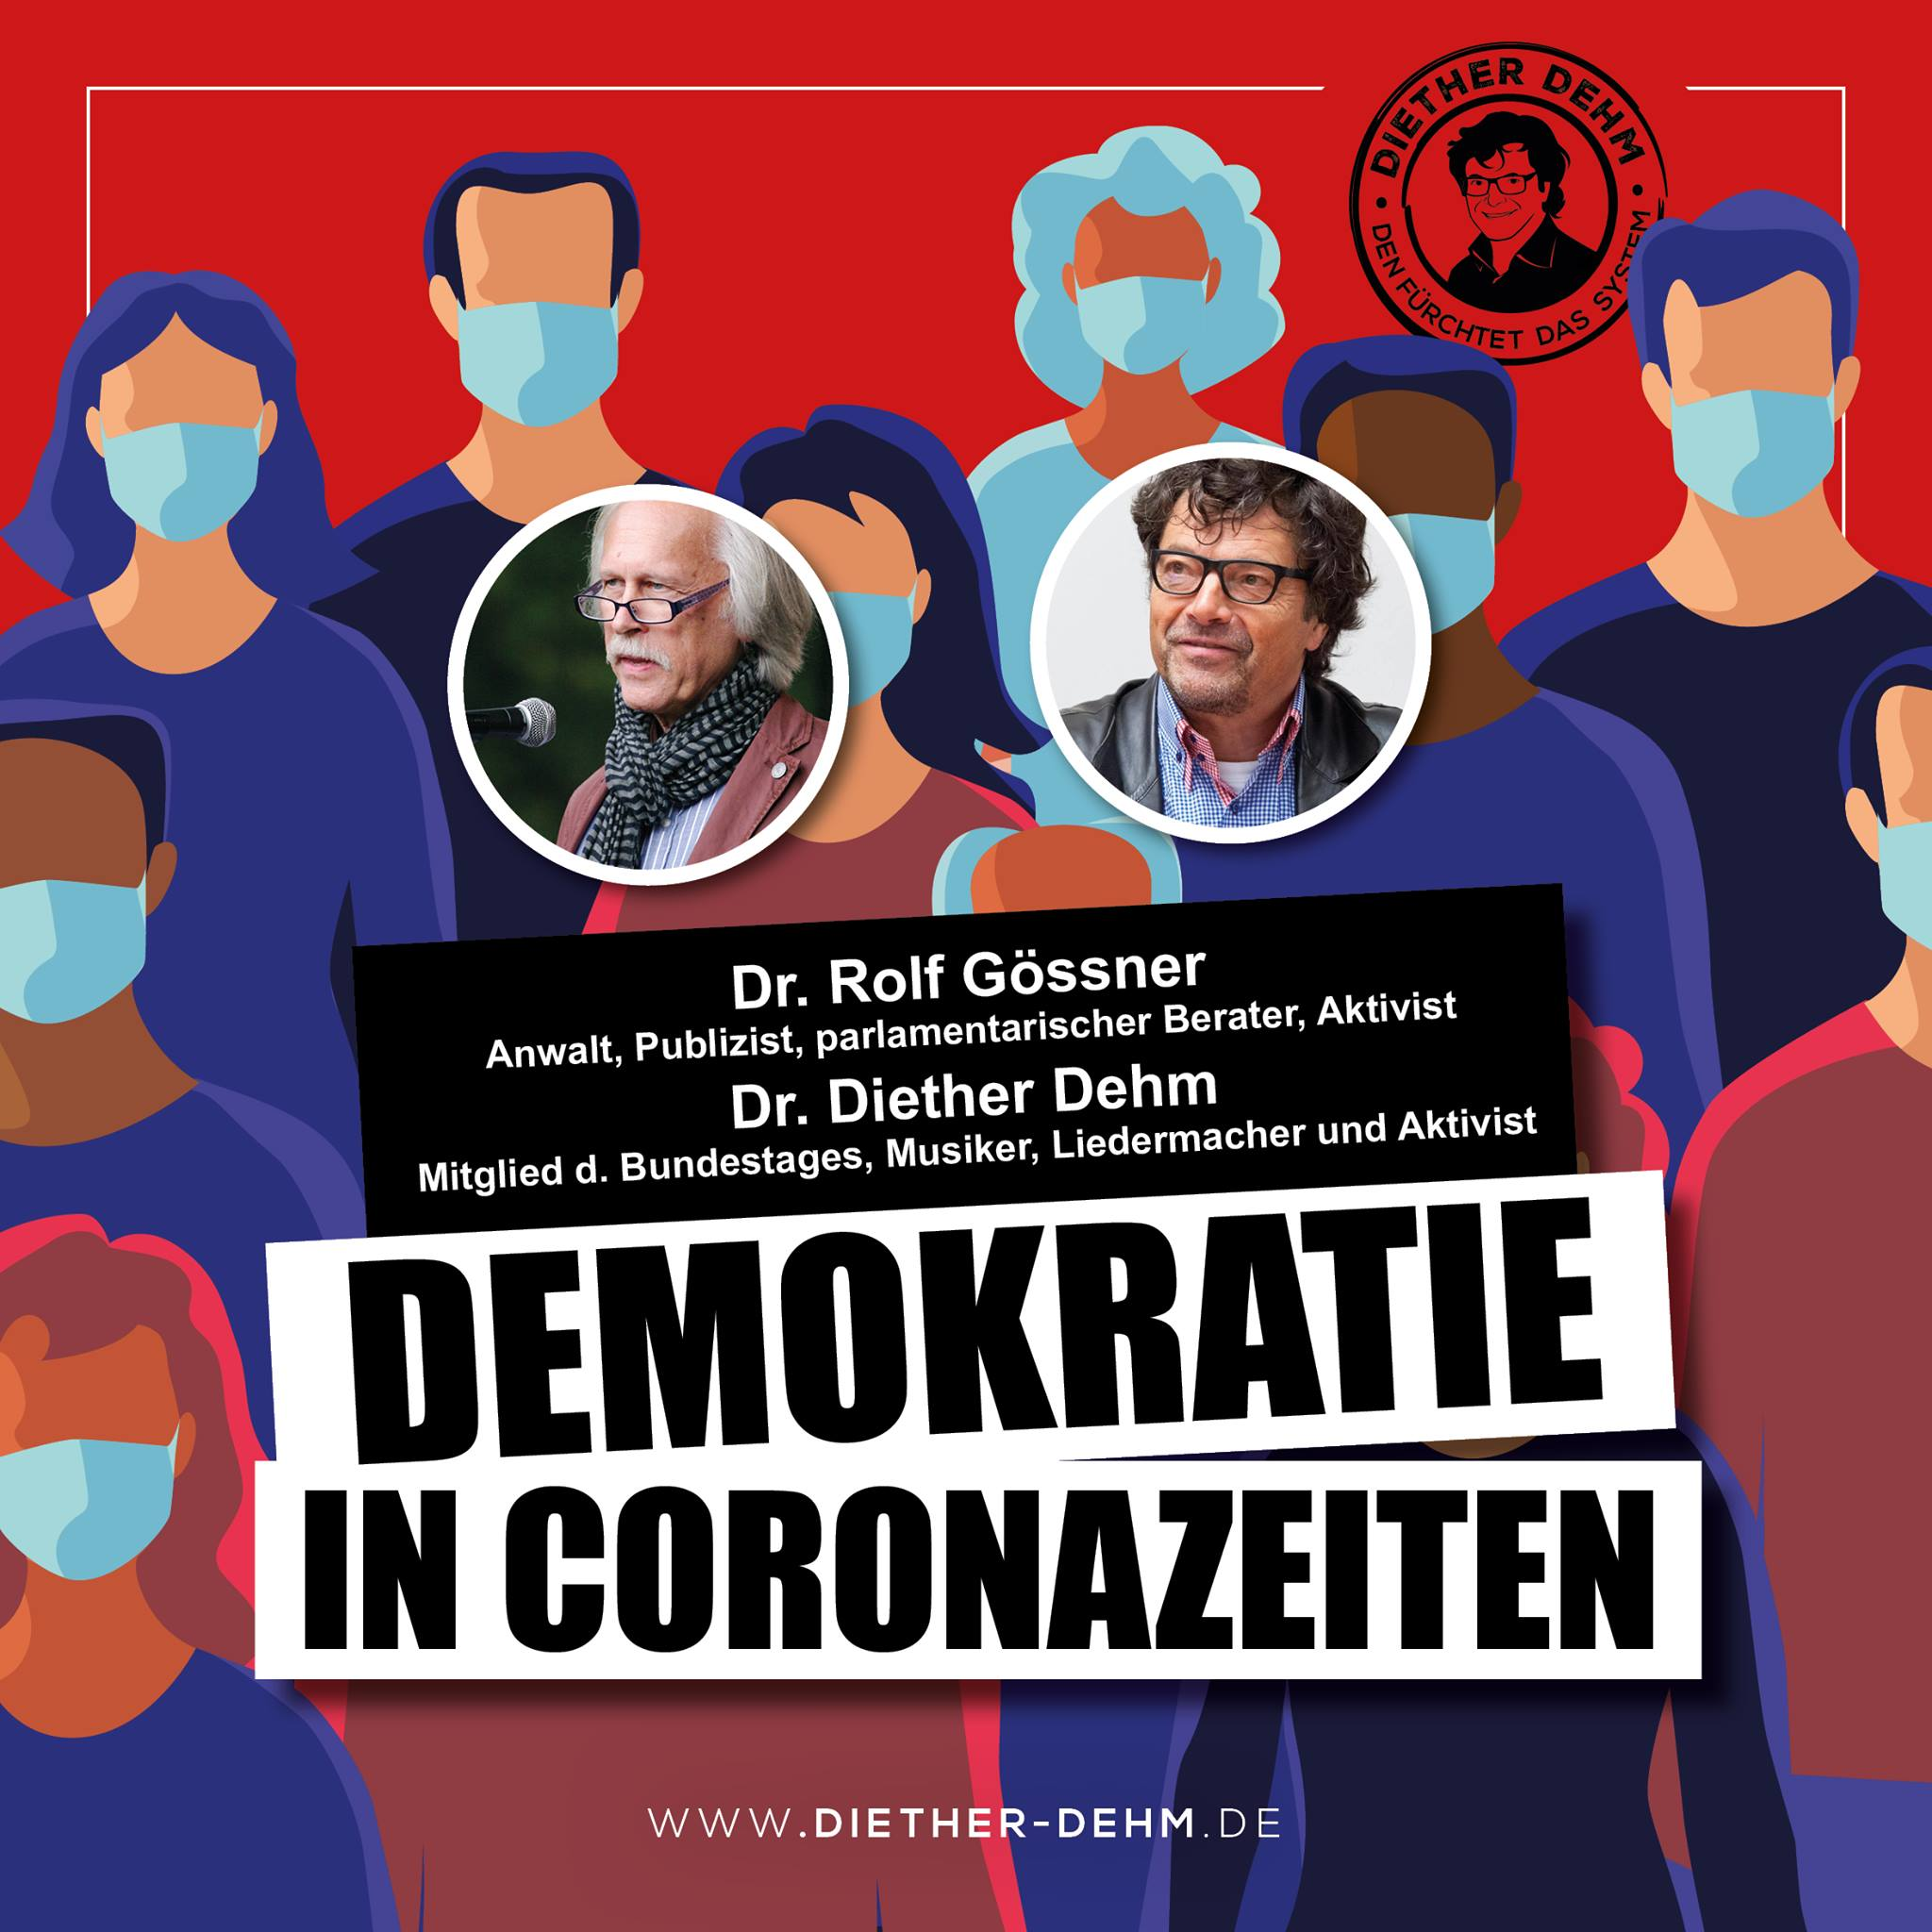 demokratie in Coronazeiten